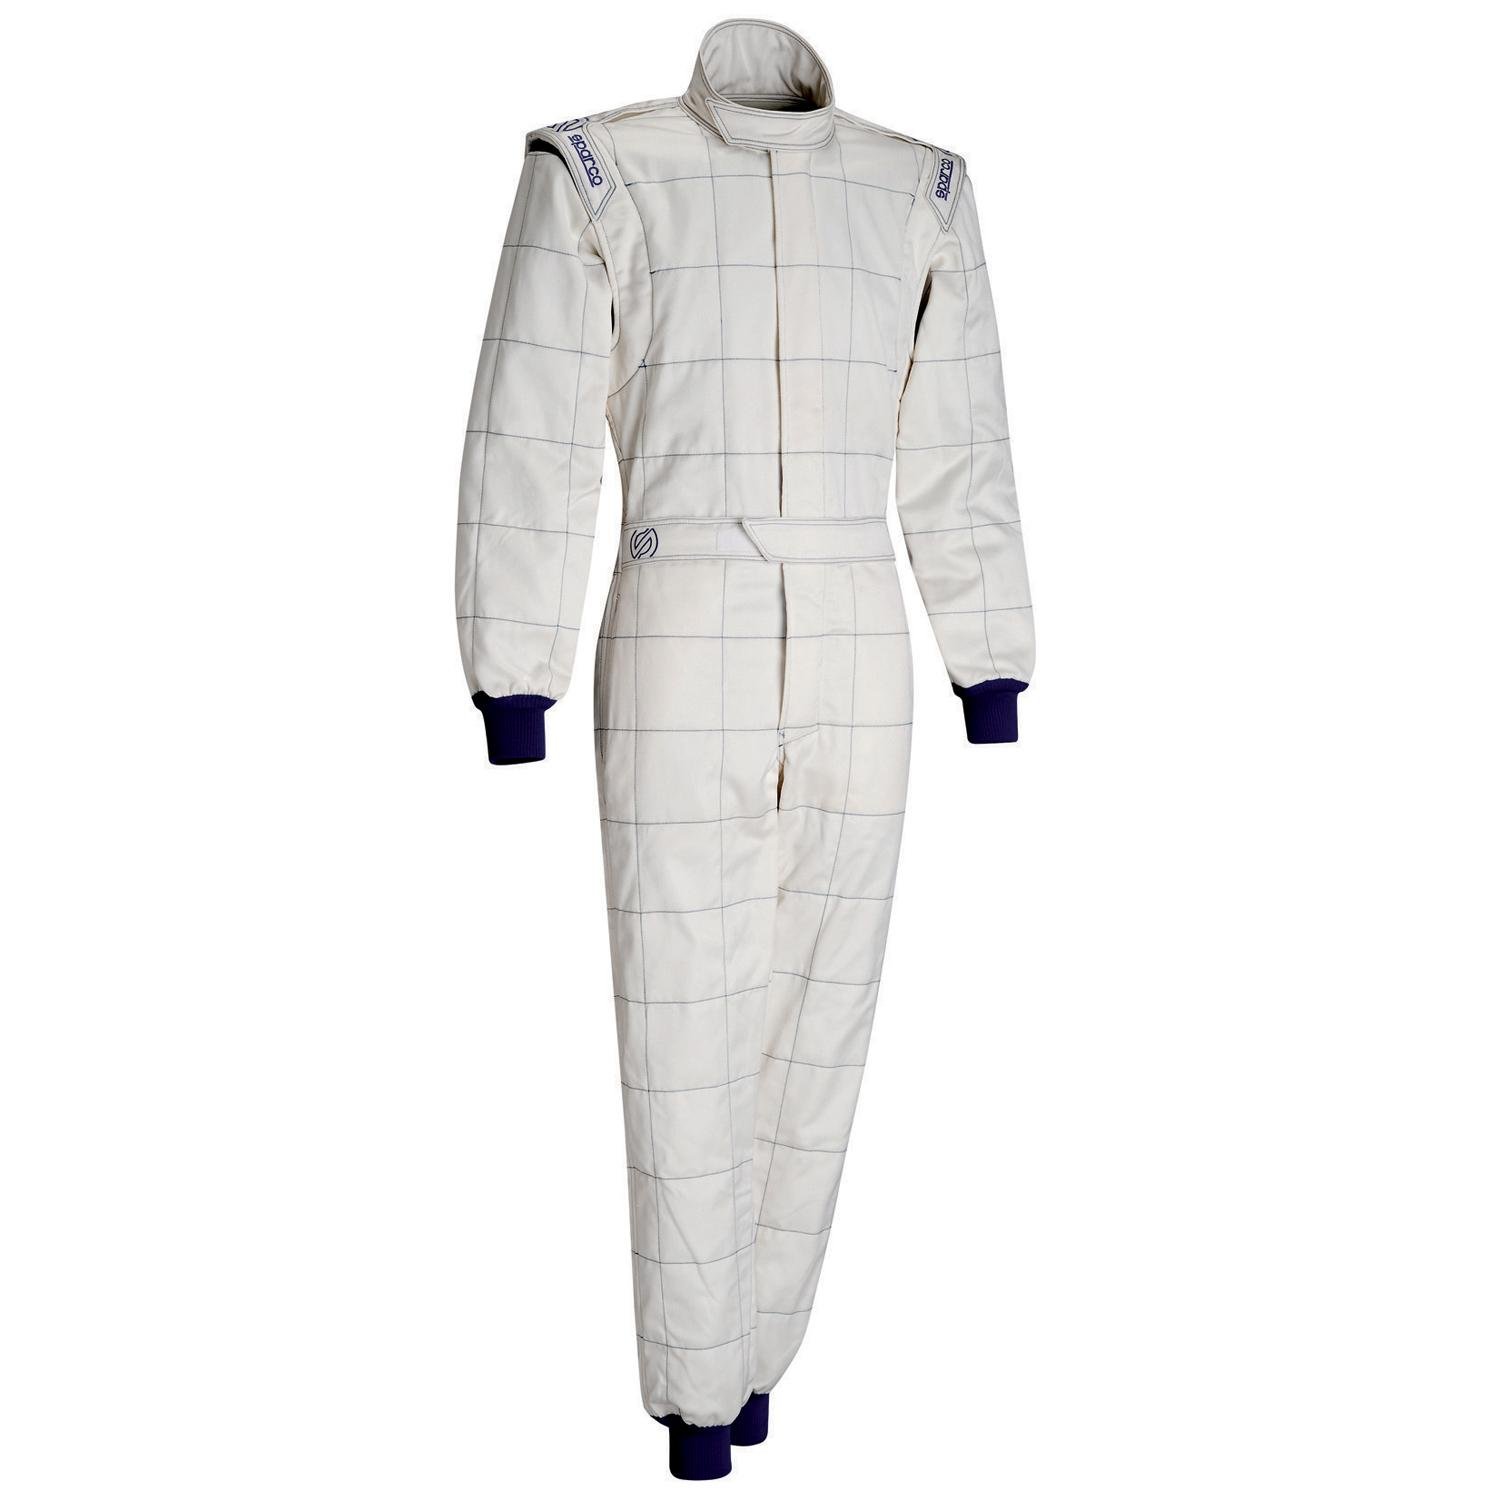 Sparco M-5 Race Suit in White from Merlin Motorsport